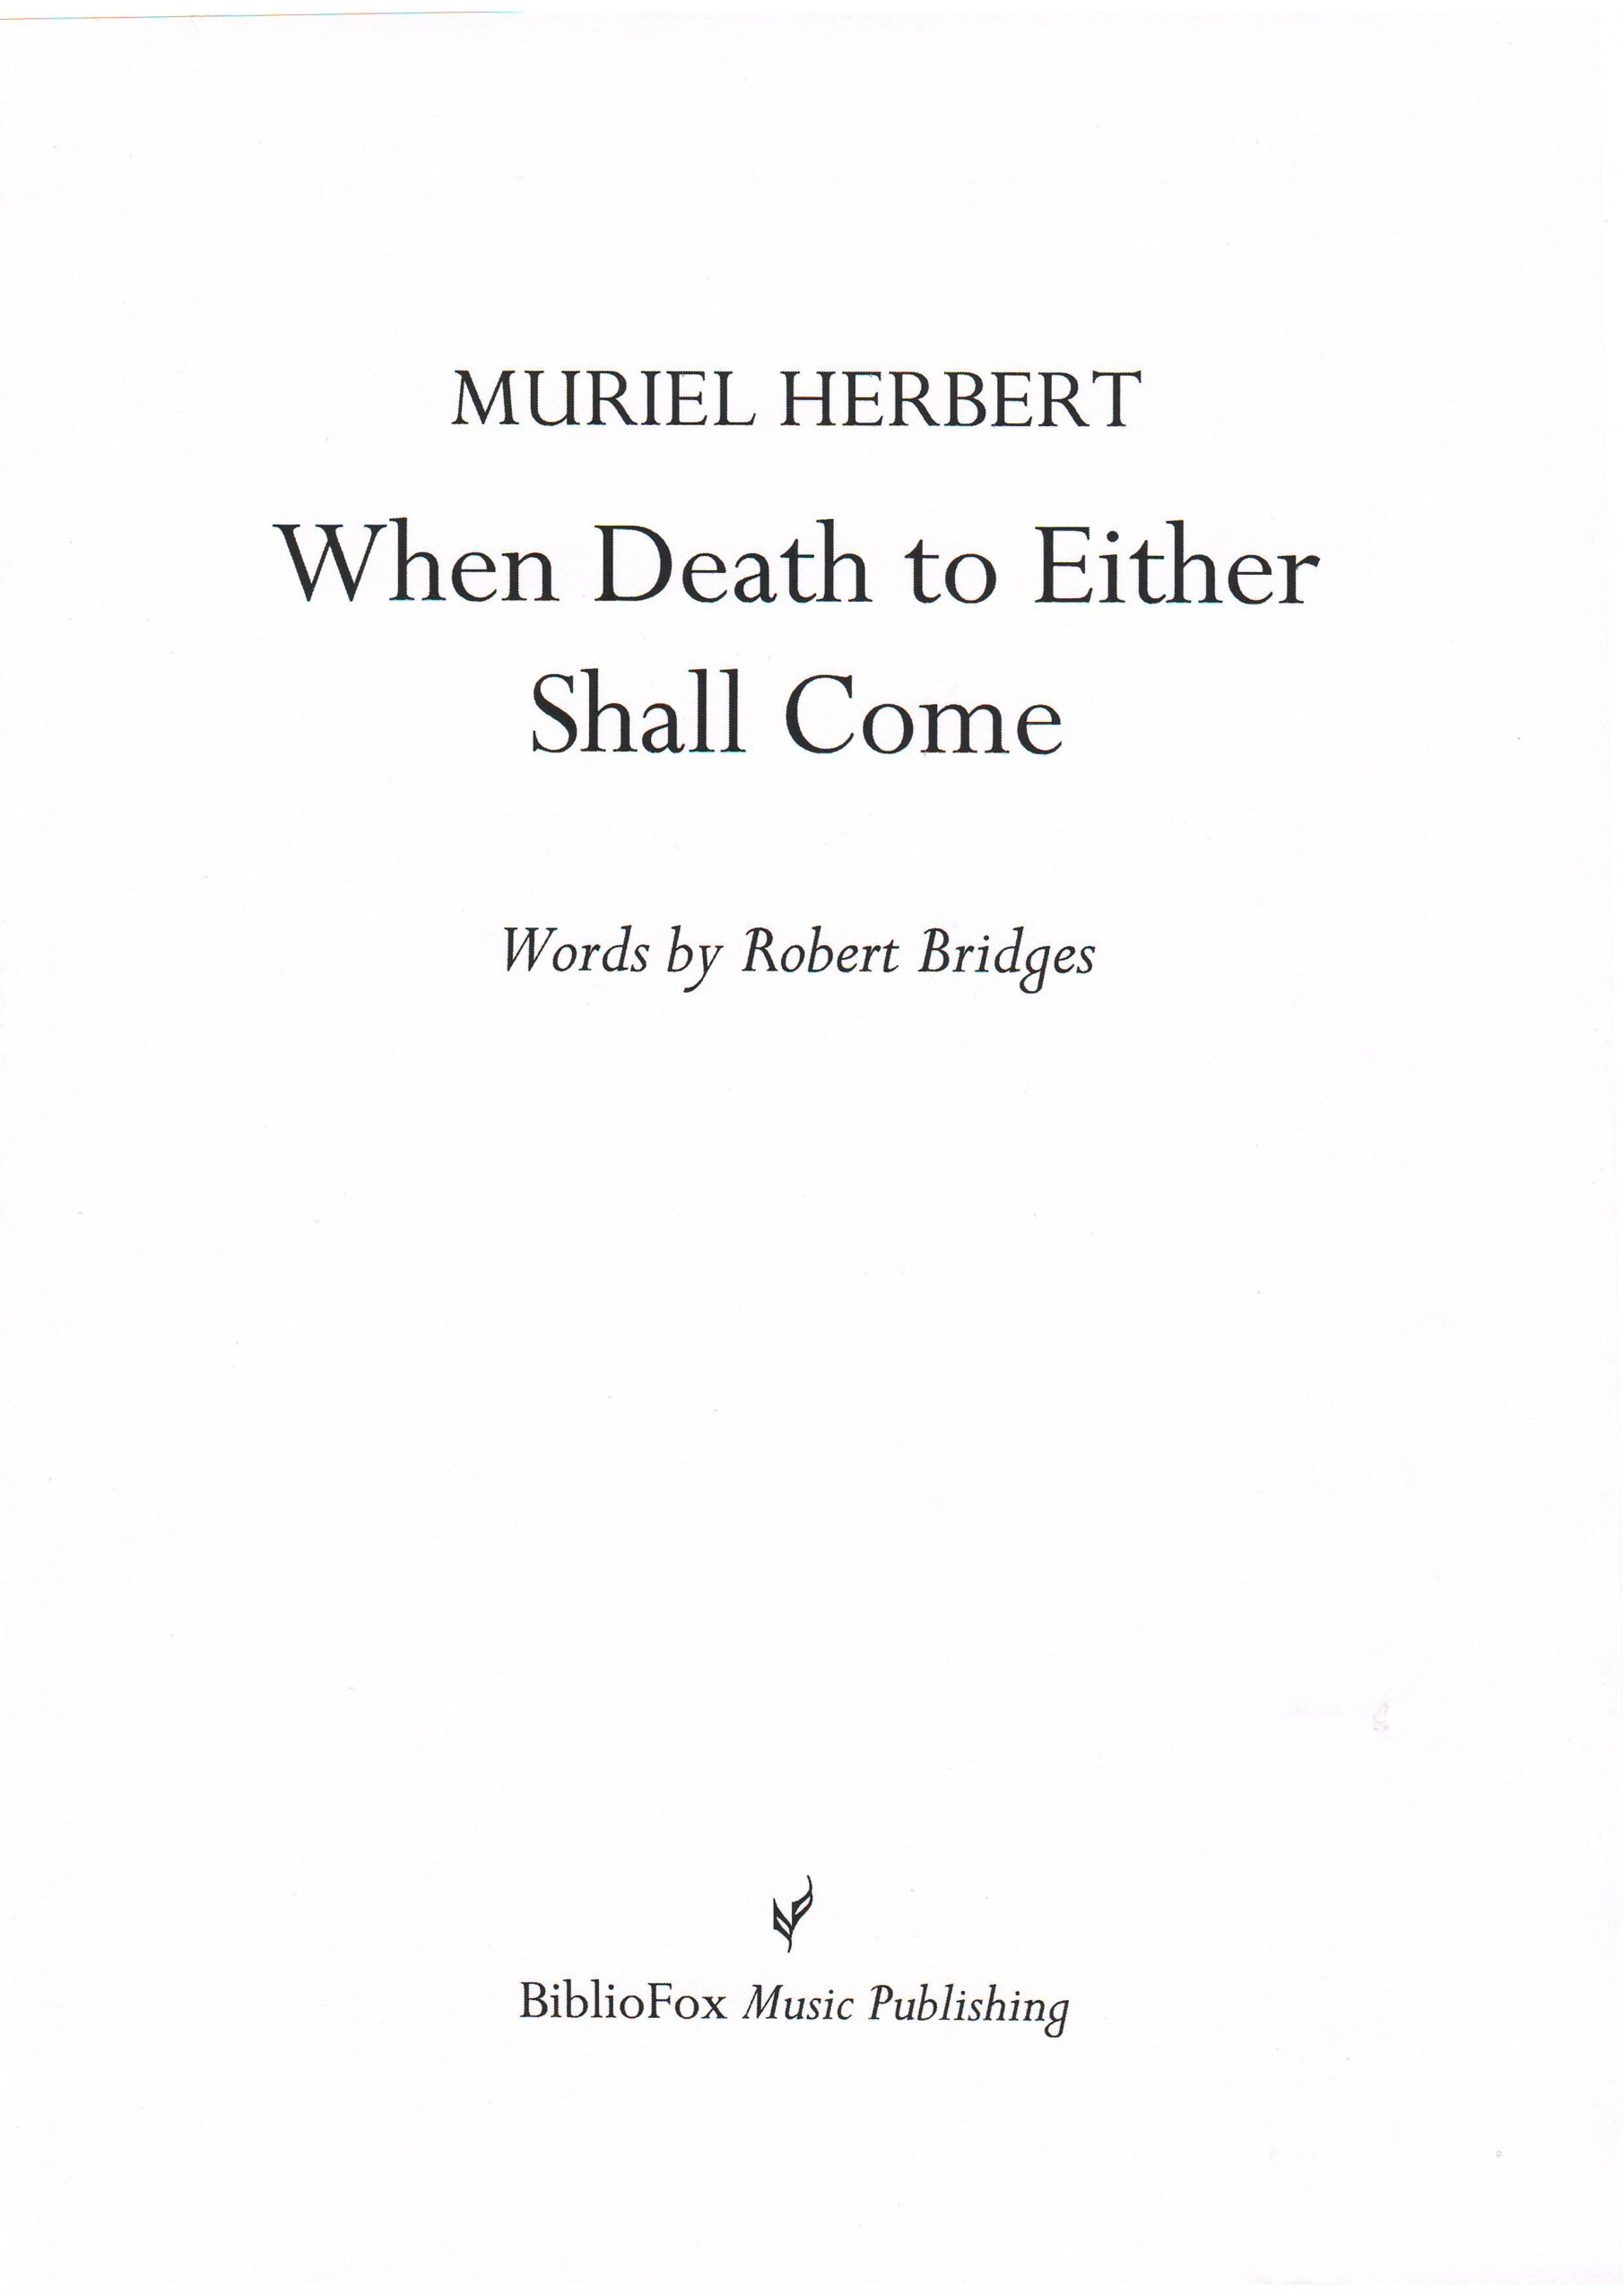 Cover page of Herbert When Death to Either Shall Come